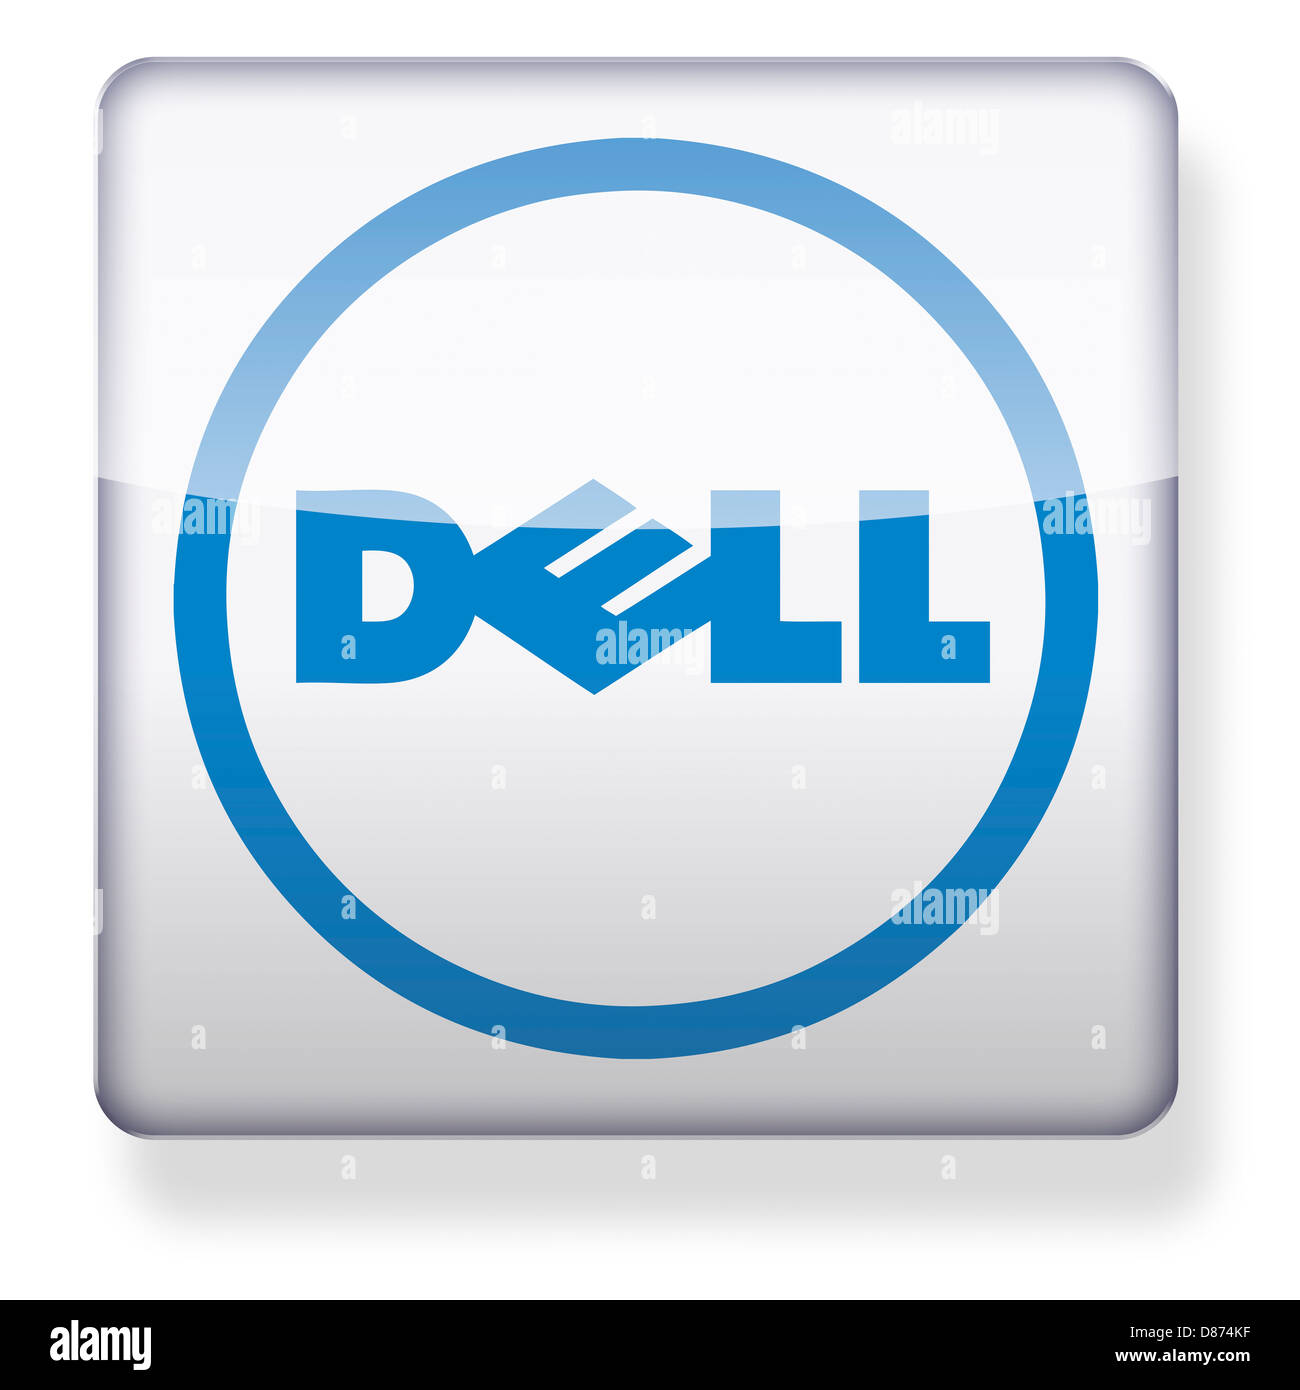 Dell logo as an app icon clipping path included stock photo dell logo as an app icon clipping path included buycottarizona